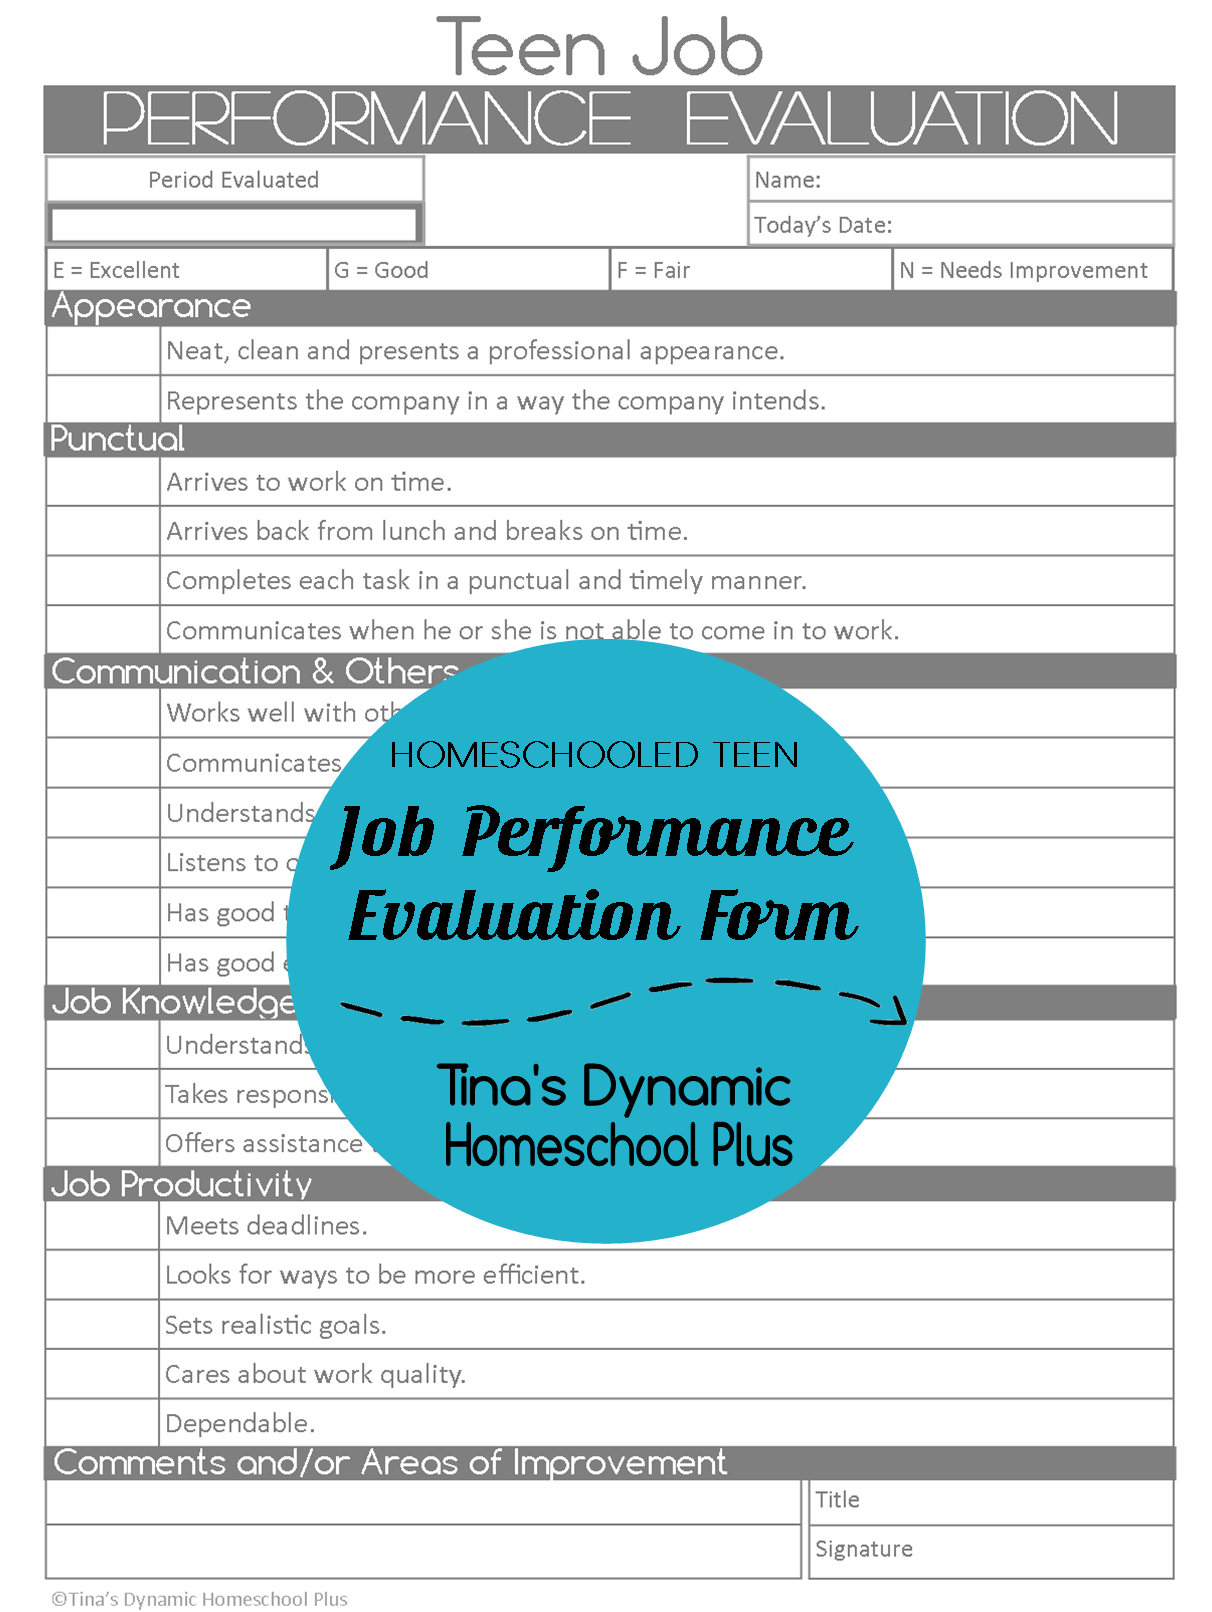 homeschooled teen job performance evaluation form